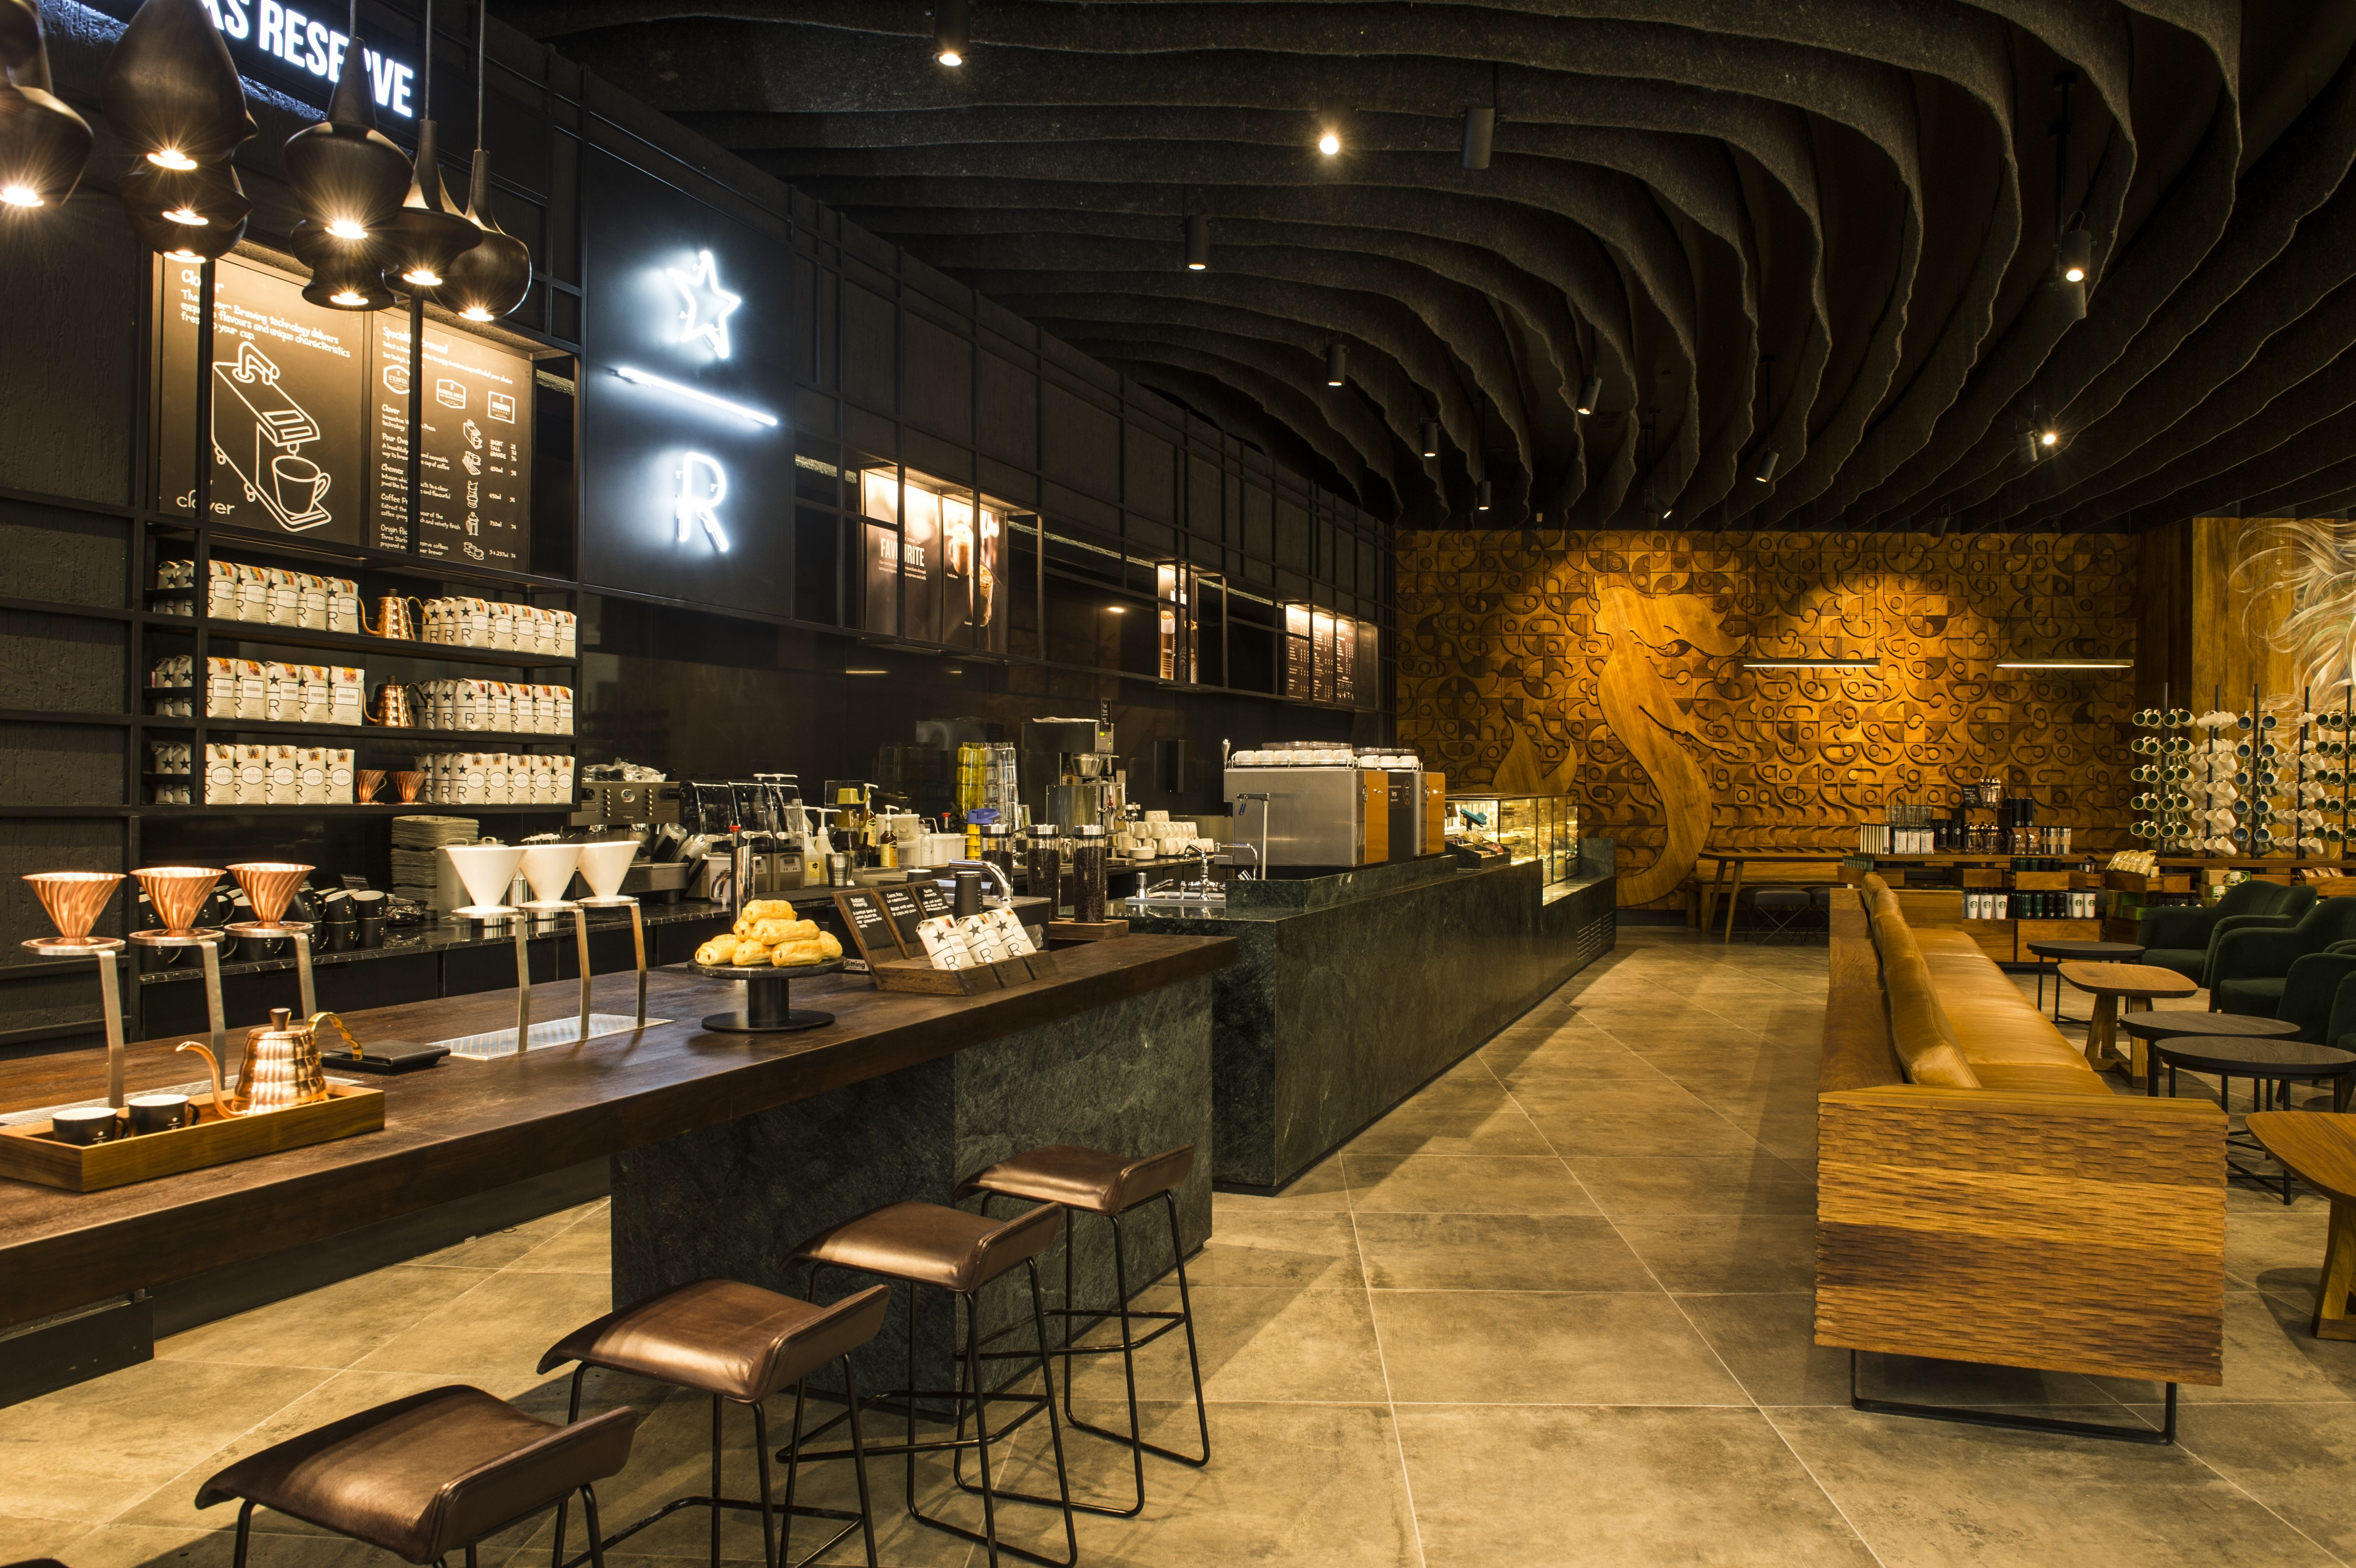 Starbucks with an interior inspired by local arts in Johannesburg ...